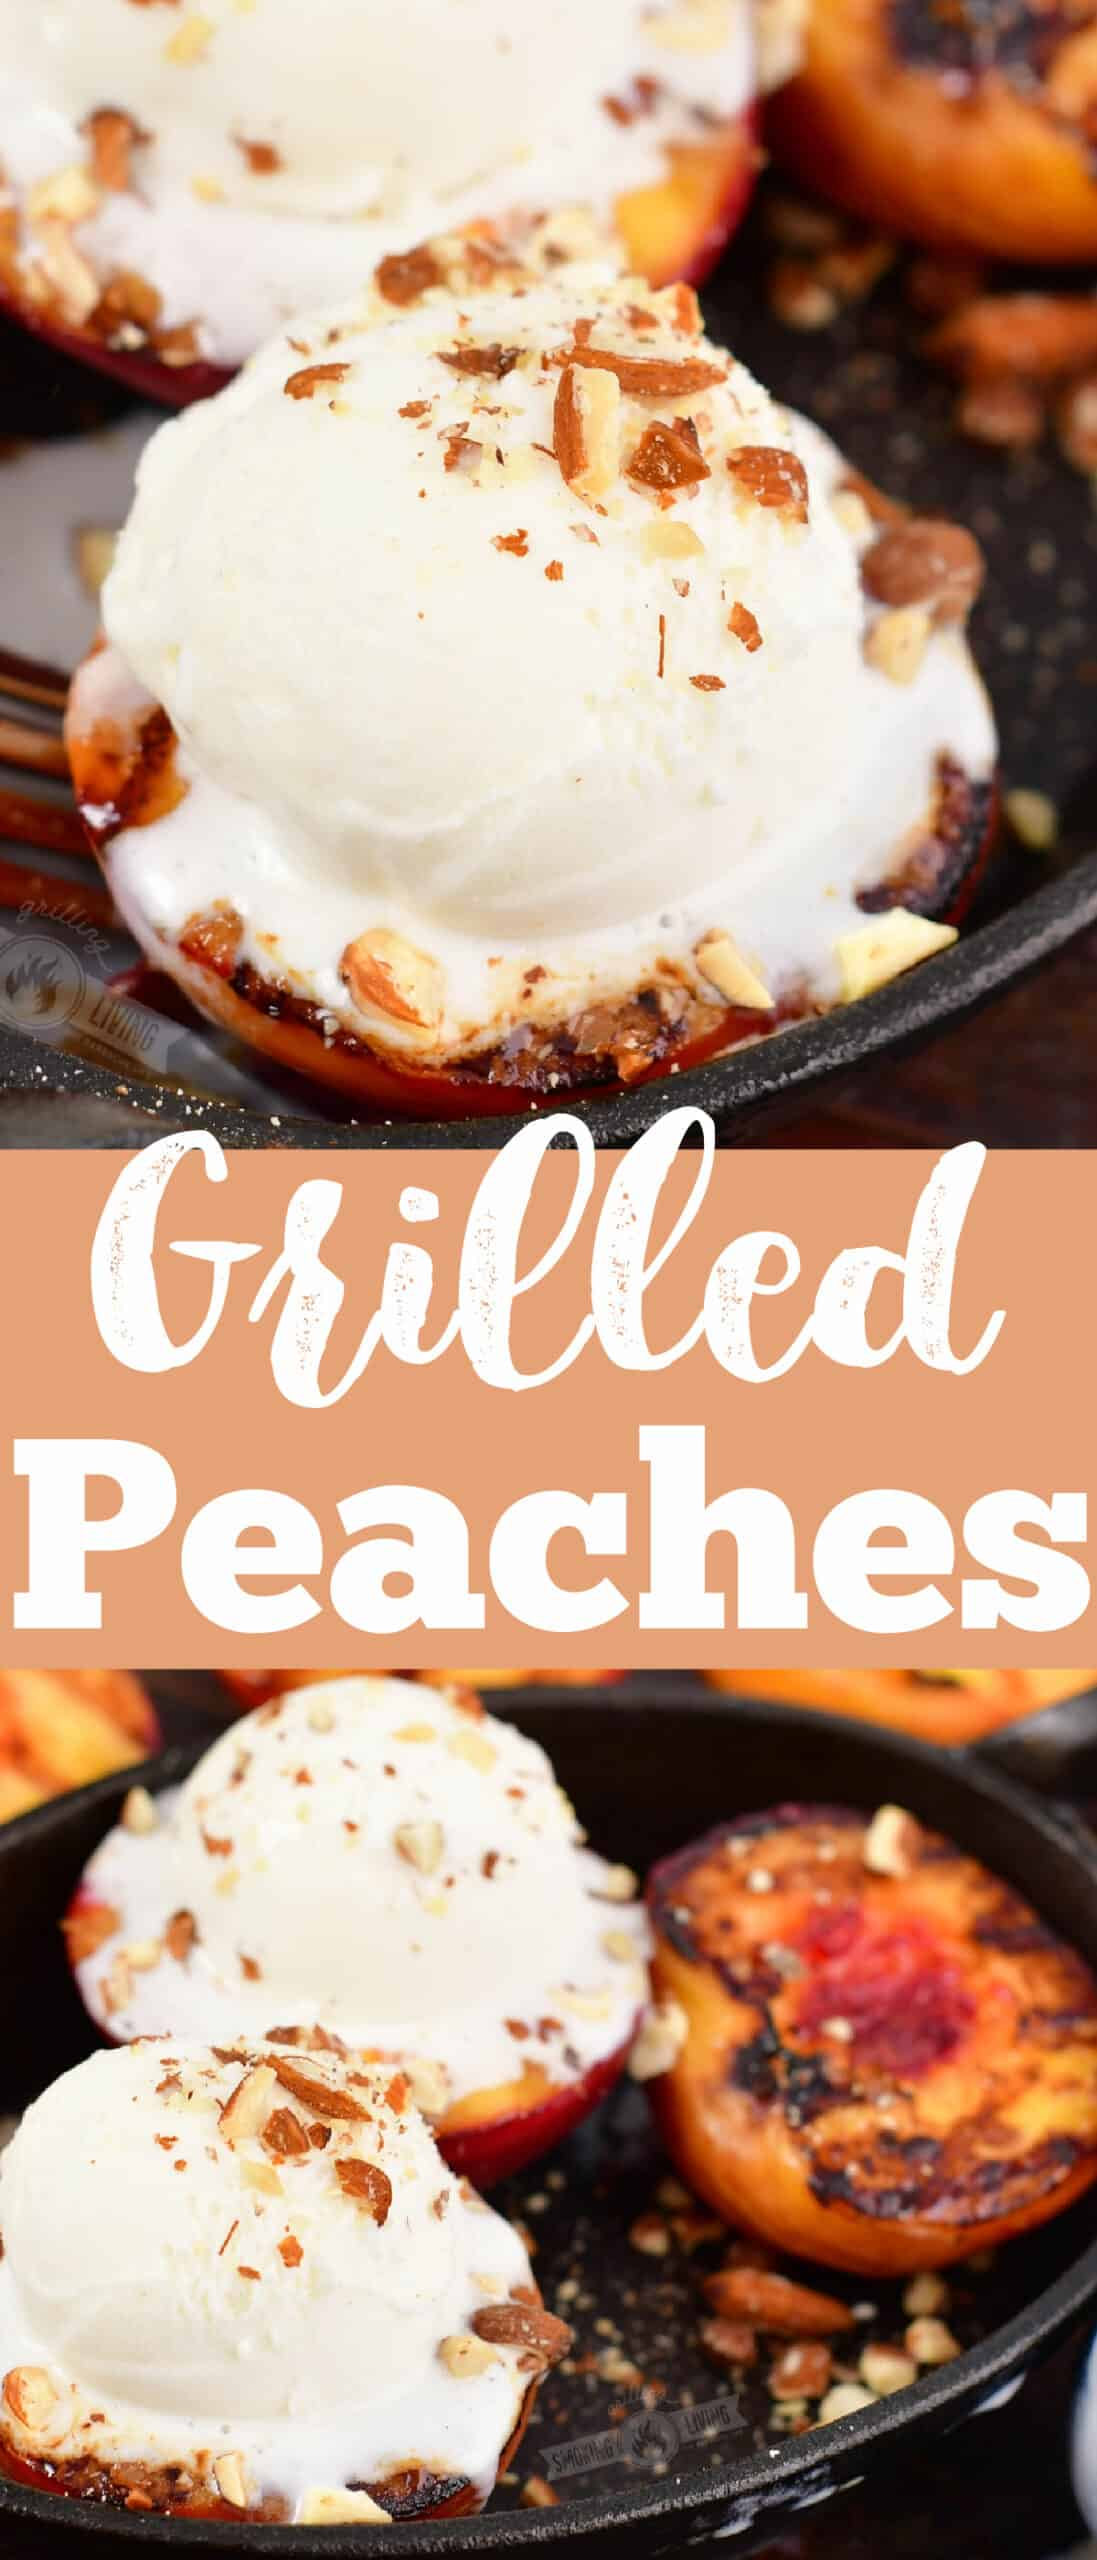 collages of two images of grilled peaches topped with ice cream